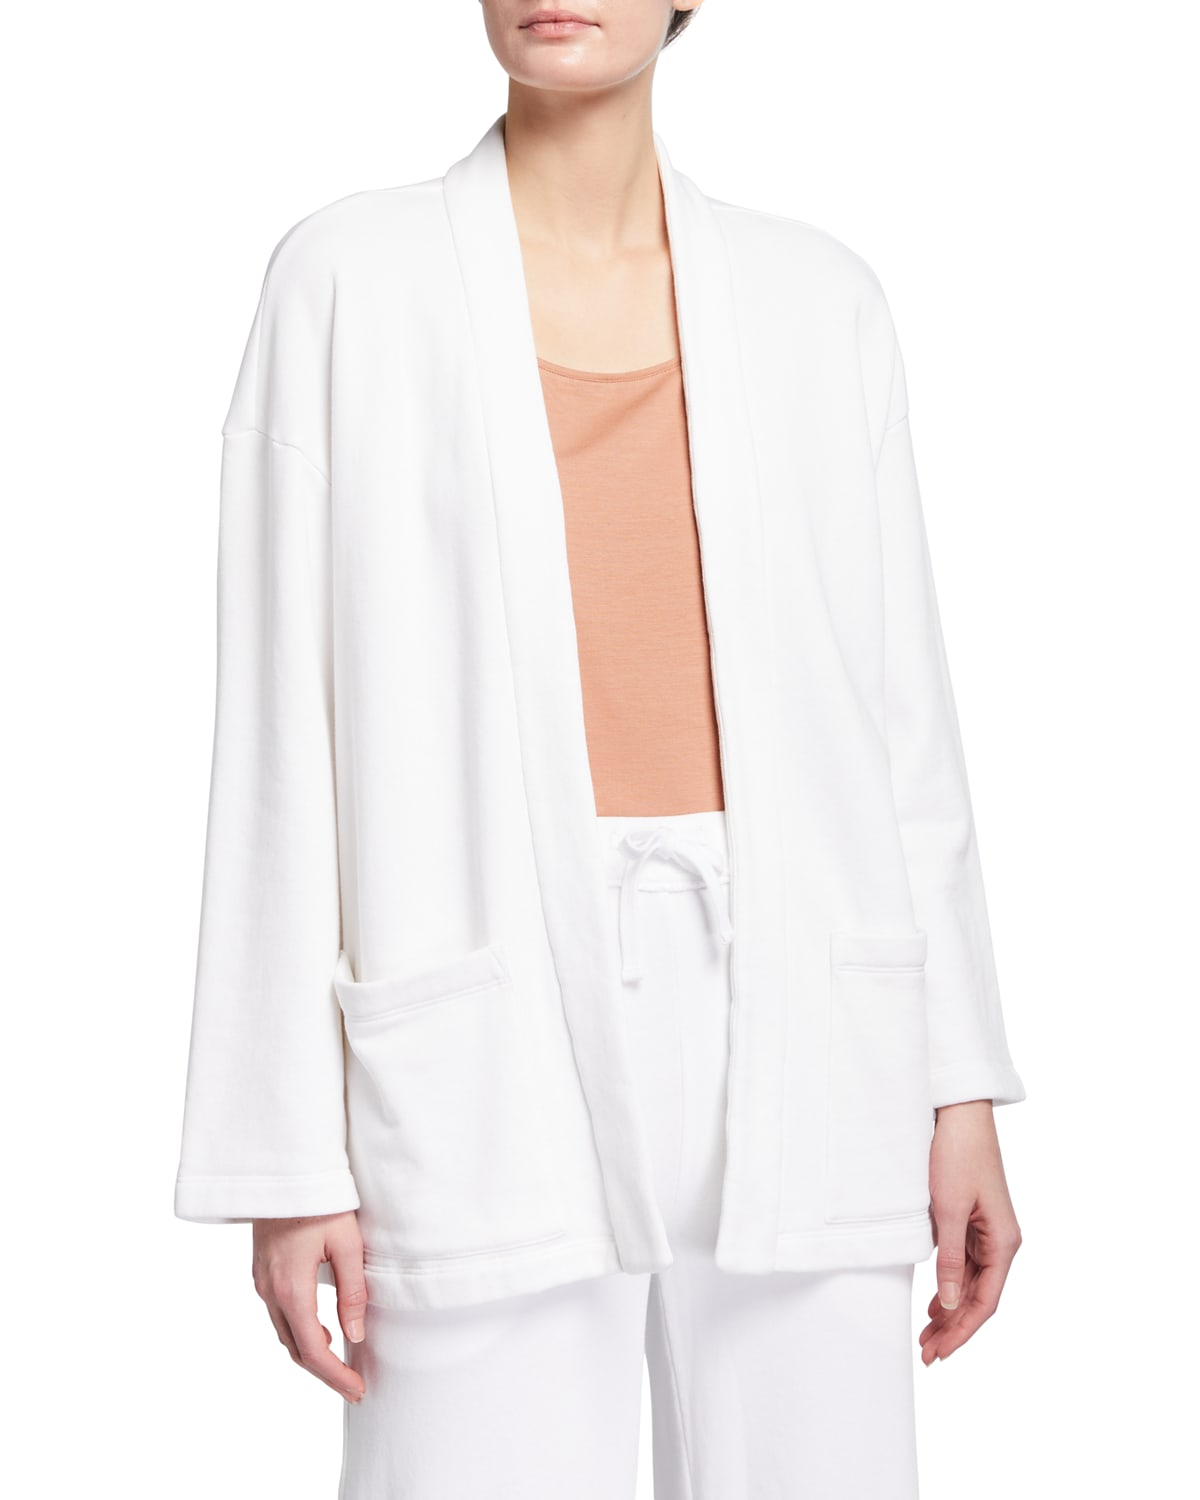 Organic Cotton French Terry High-Collar Jacket